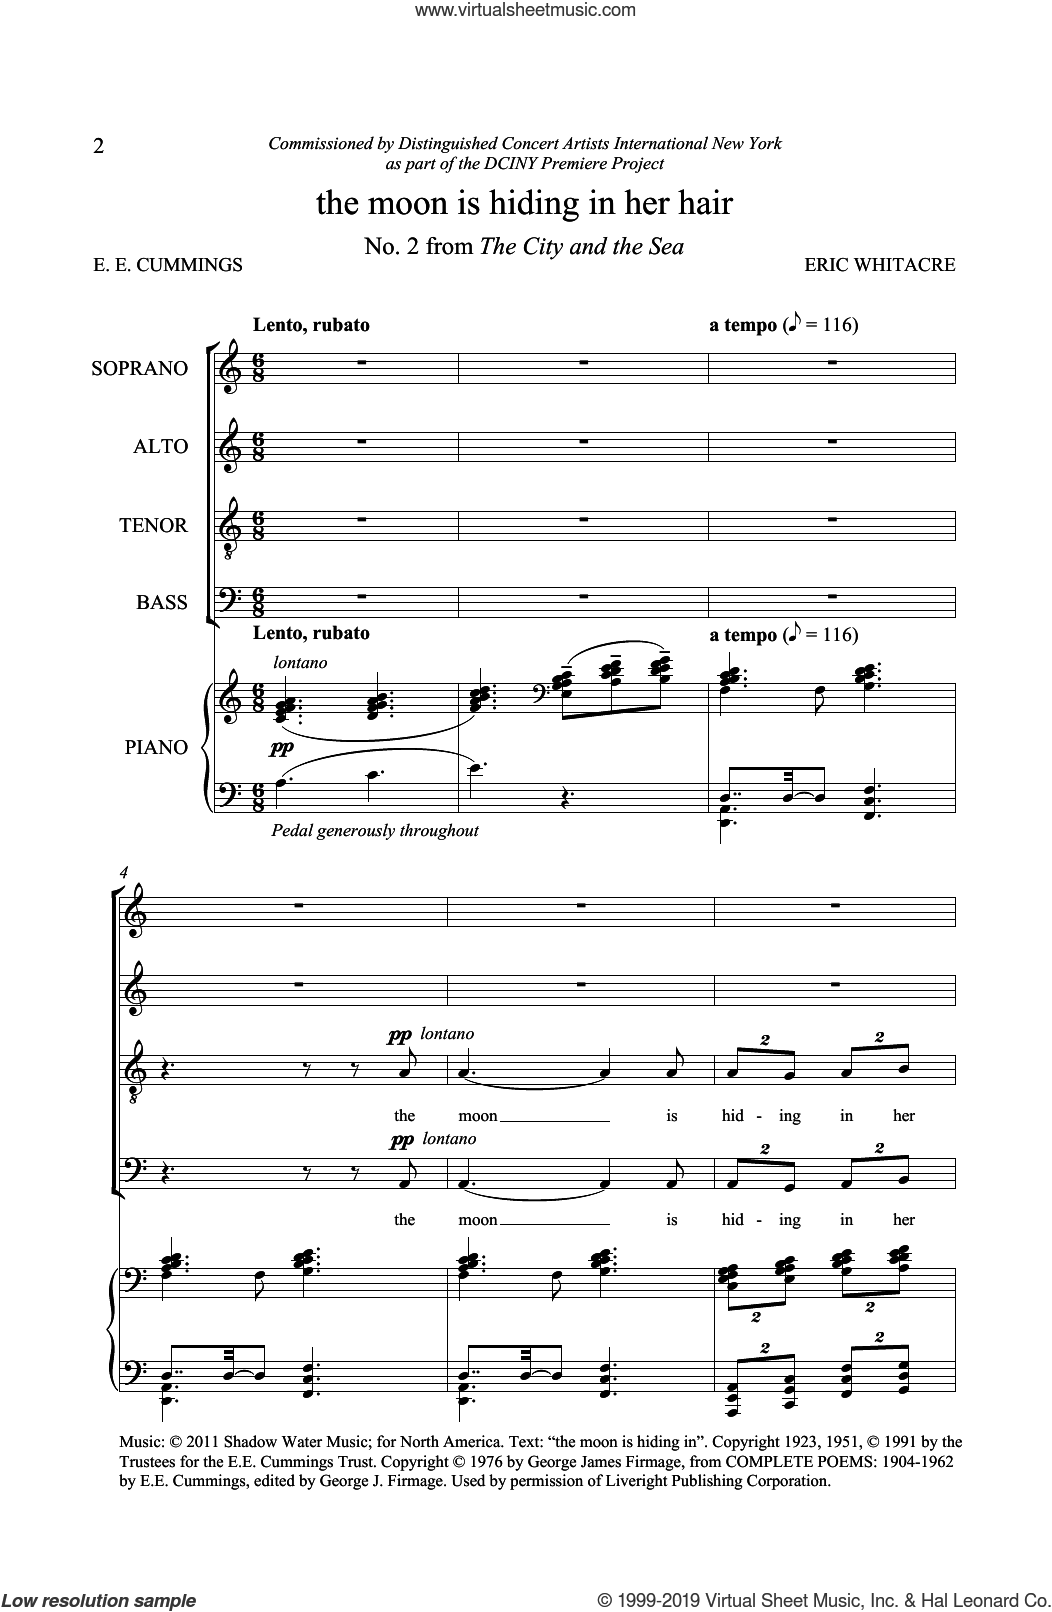 The Moon Is Hiding In Her Hair (from The City And The Sea) sheet music for choir (SATB: soprano, alto, tenor, bass) by Eric Whitacre and E.E. Cummings, intermediate skill level